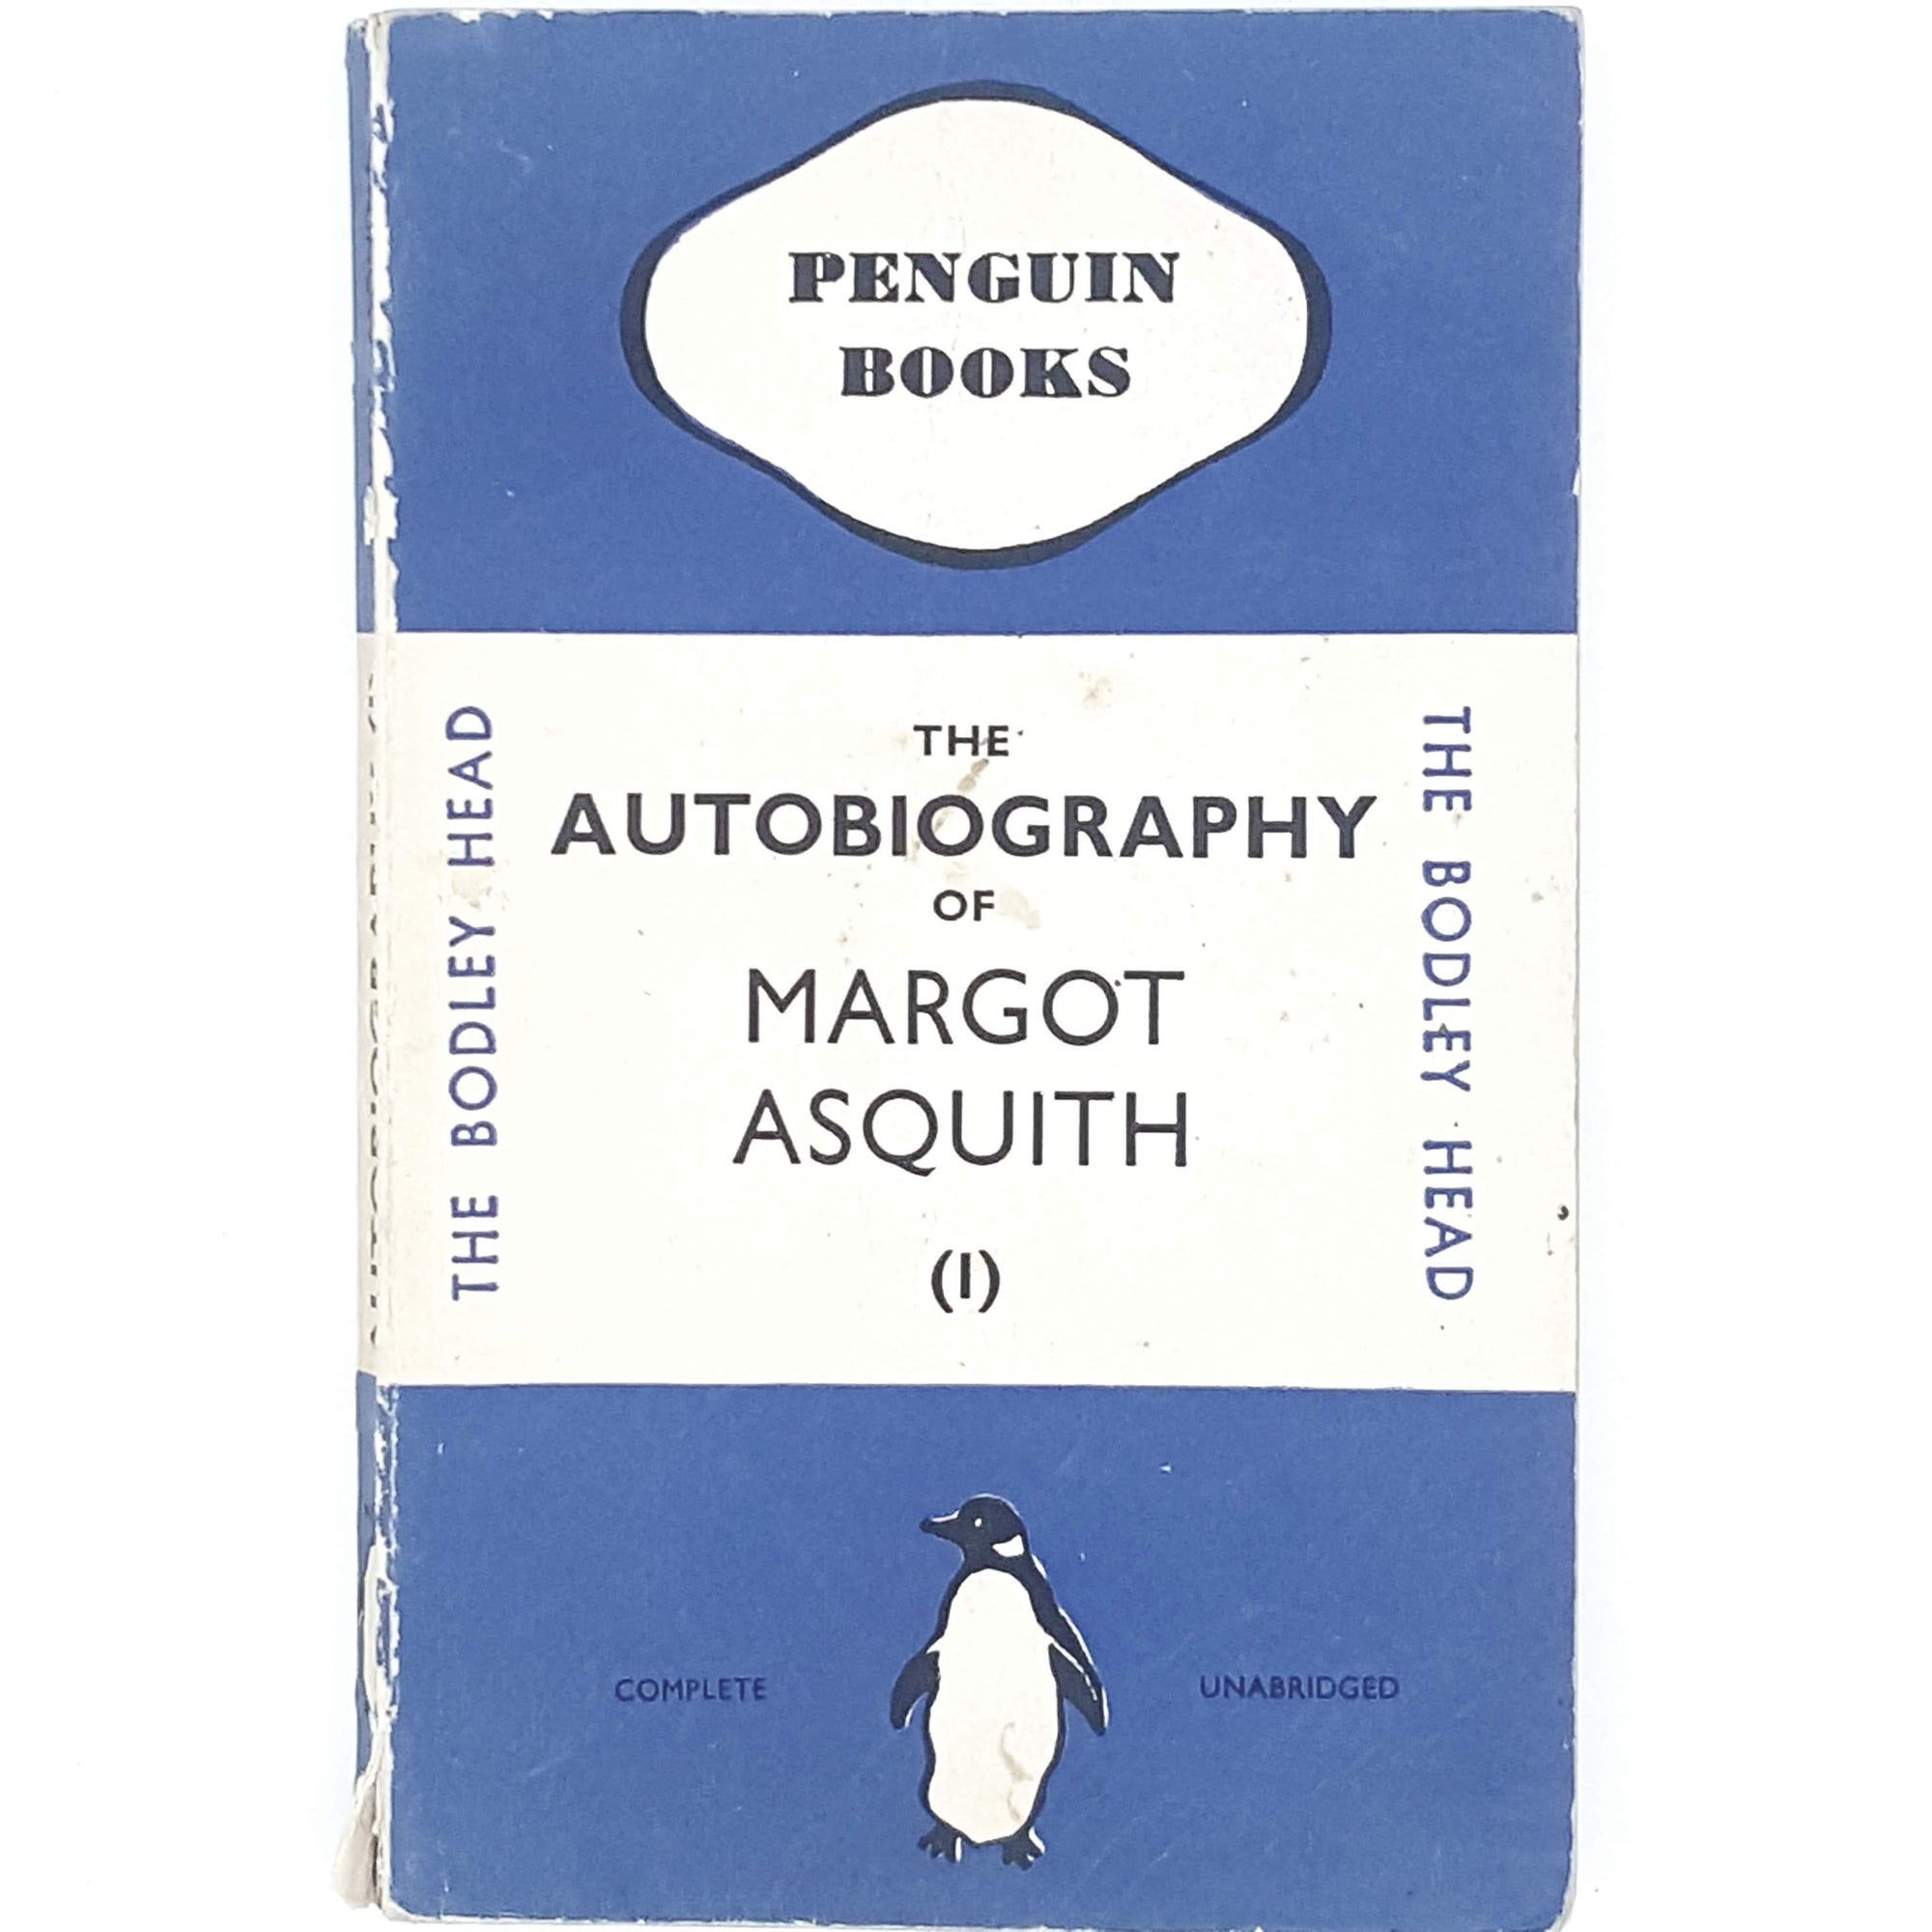 Vintage Penguin The Autobiography of Margot Asquith I 1936